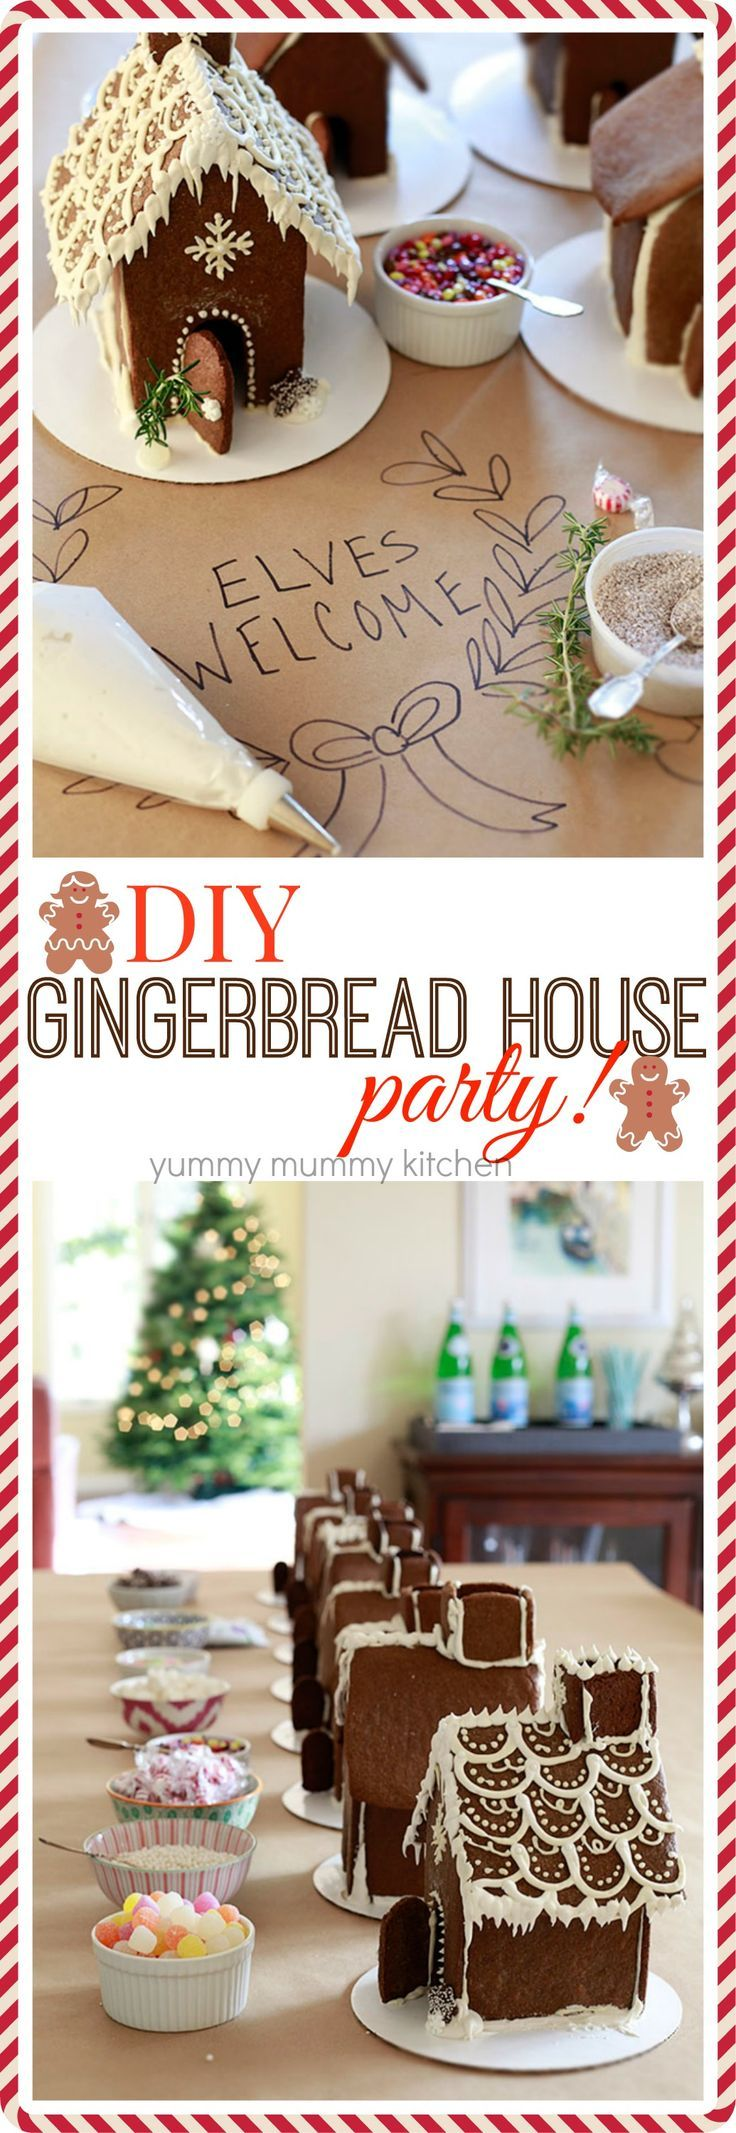 17 Best Images About Kids Party Ideas On Pinterest